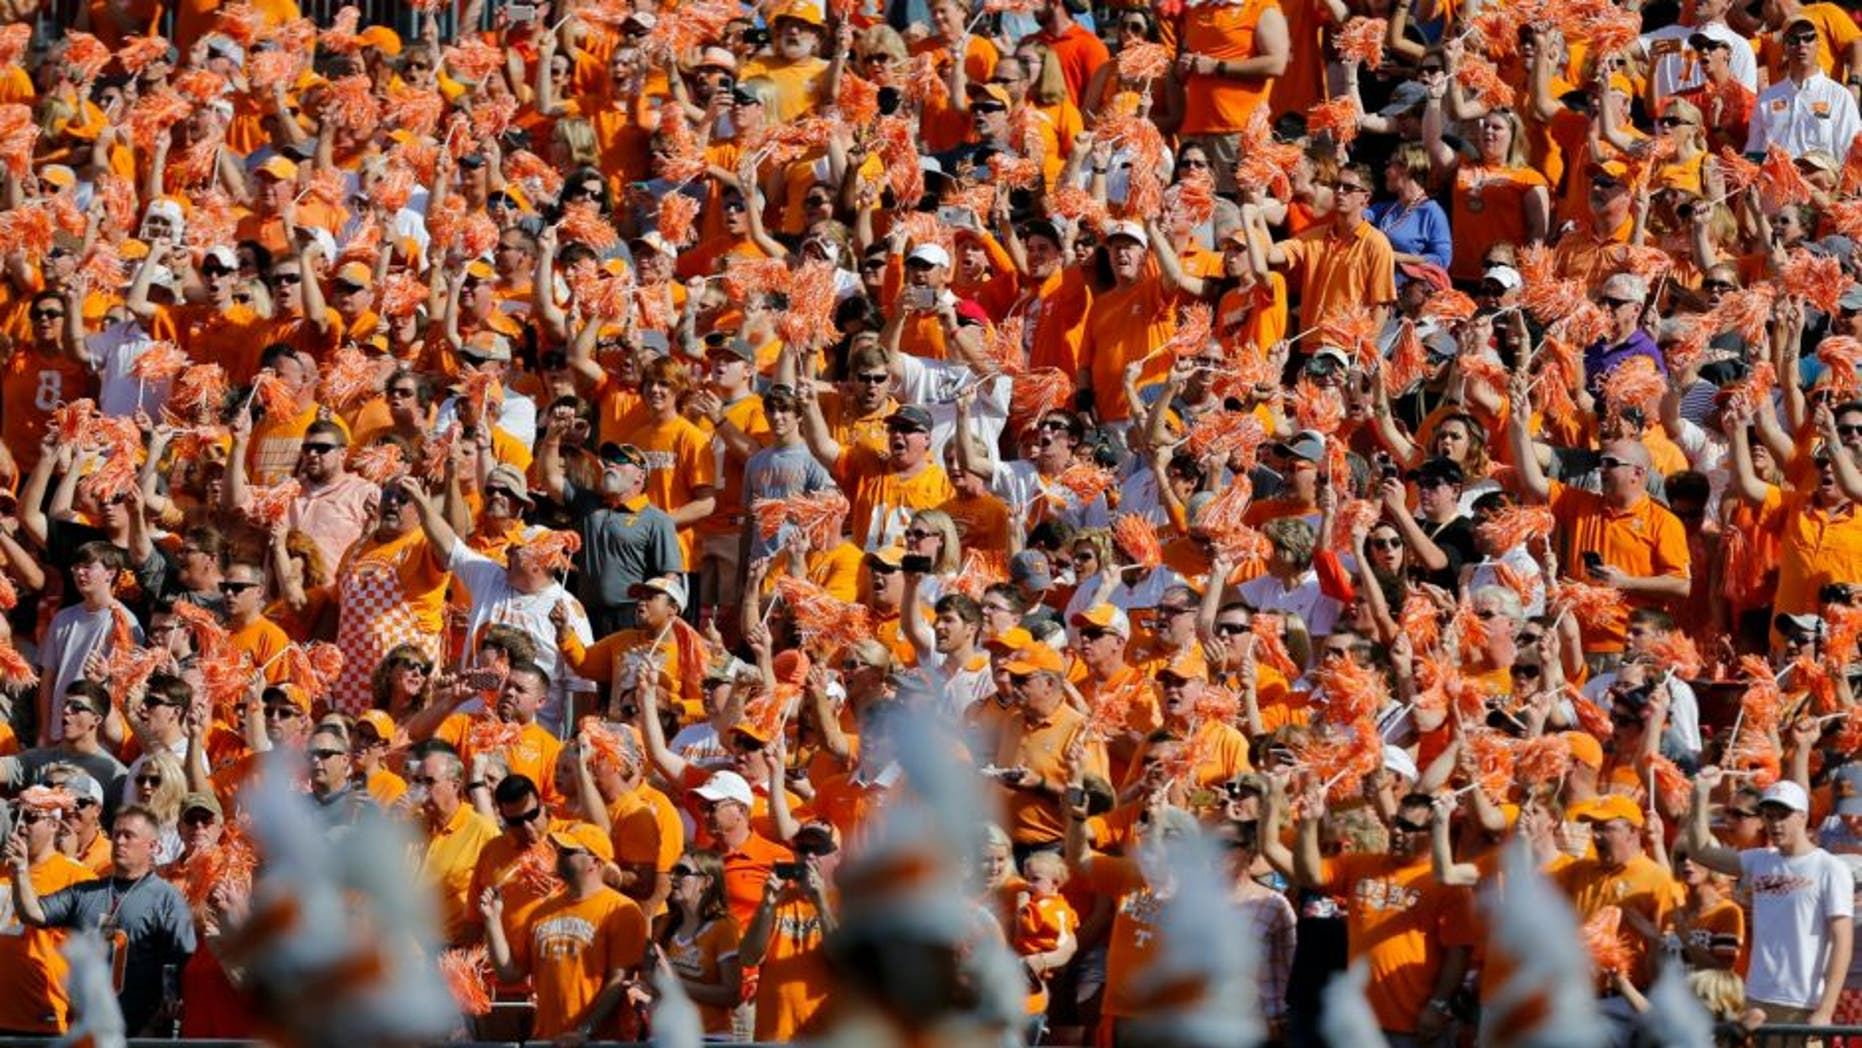 TAMPA, FL - JANUARY 1: Tennessee Volunteers fans during the Outback Bowl at Raymond James Stadium on January 1, 2016 in Tampa, Florida. (Photo by Mike Carlson/Getty Images)